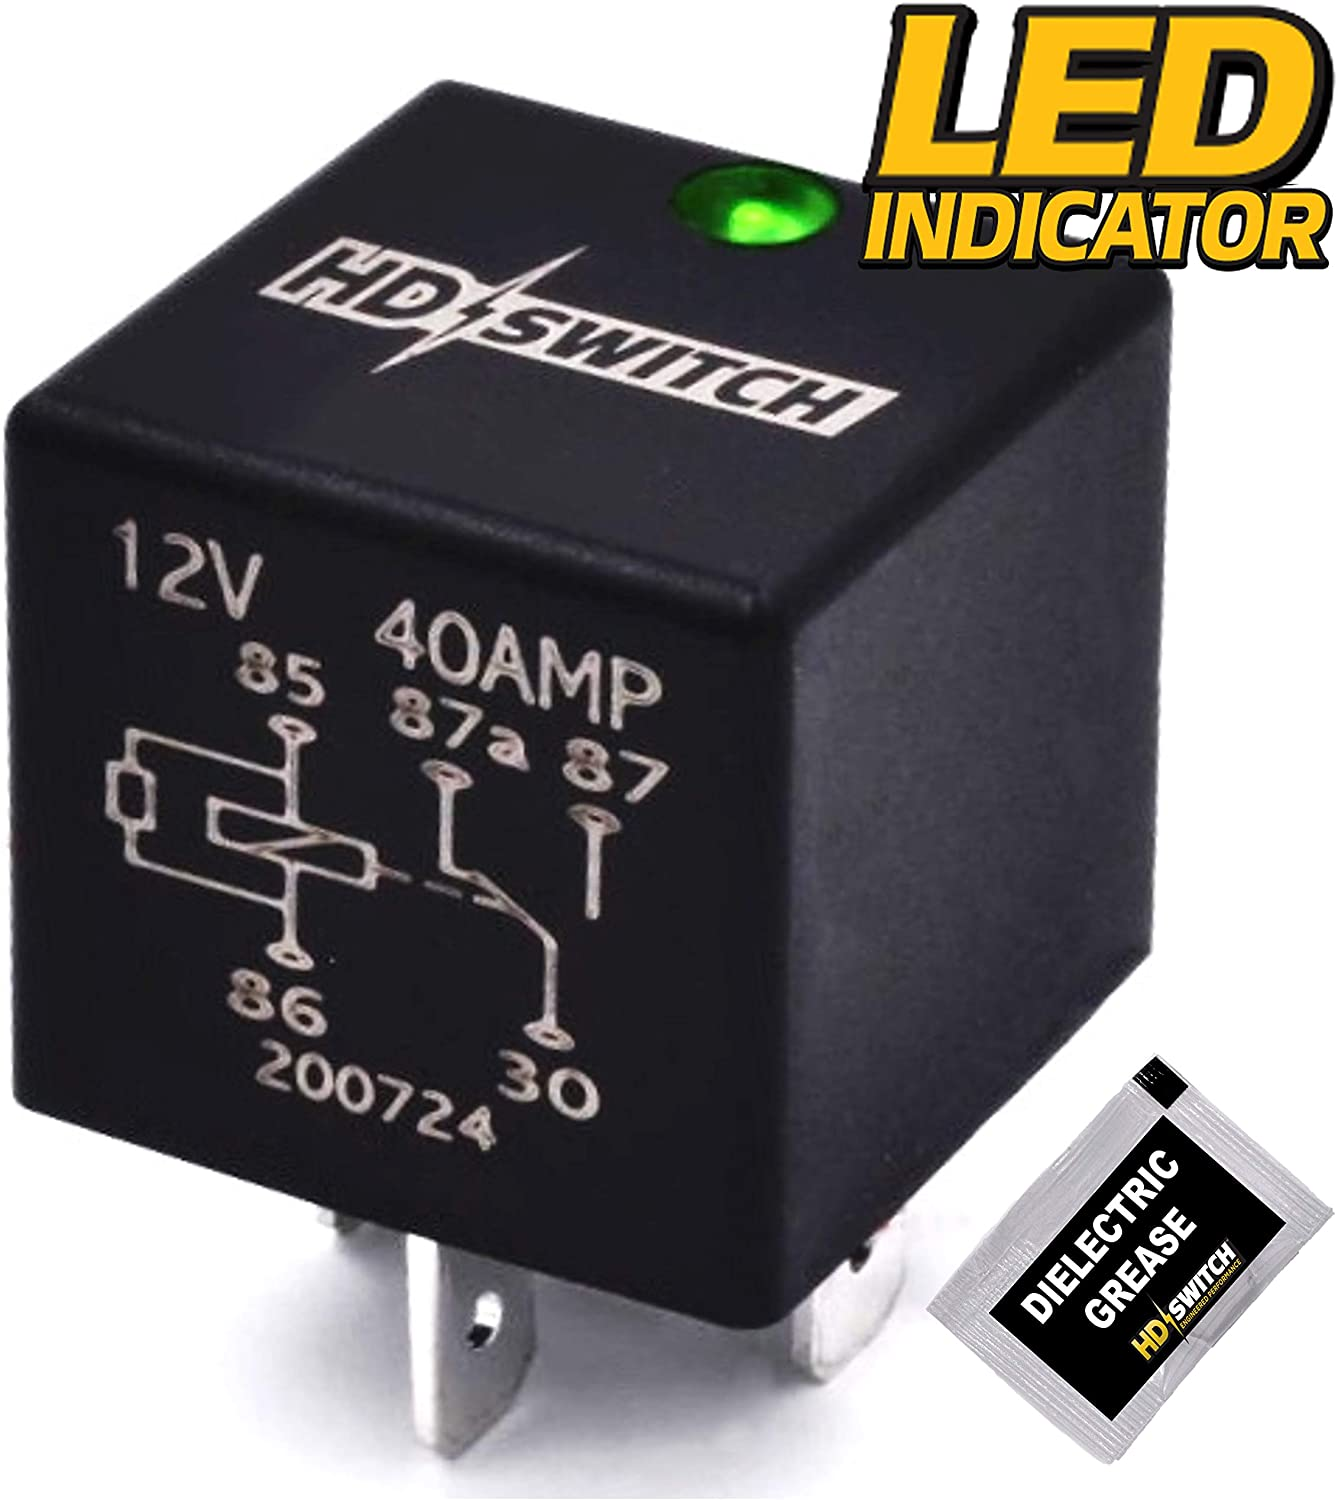 HD Switch 12V 40A Waterproof Relay Replaces John Deere 6135E 6403 6603 7200 7200R 7210 7400 7405 7410 7500 7505 7510 7600 7610 7630 7700 7710 7720 7730 7800 7810 w/LED & Dielectric Grease